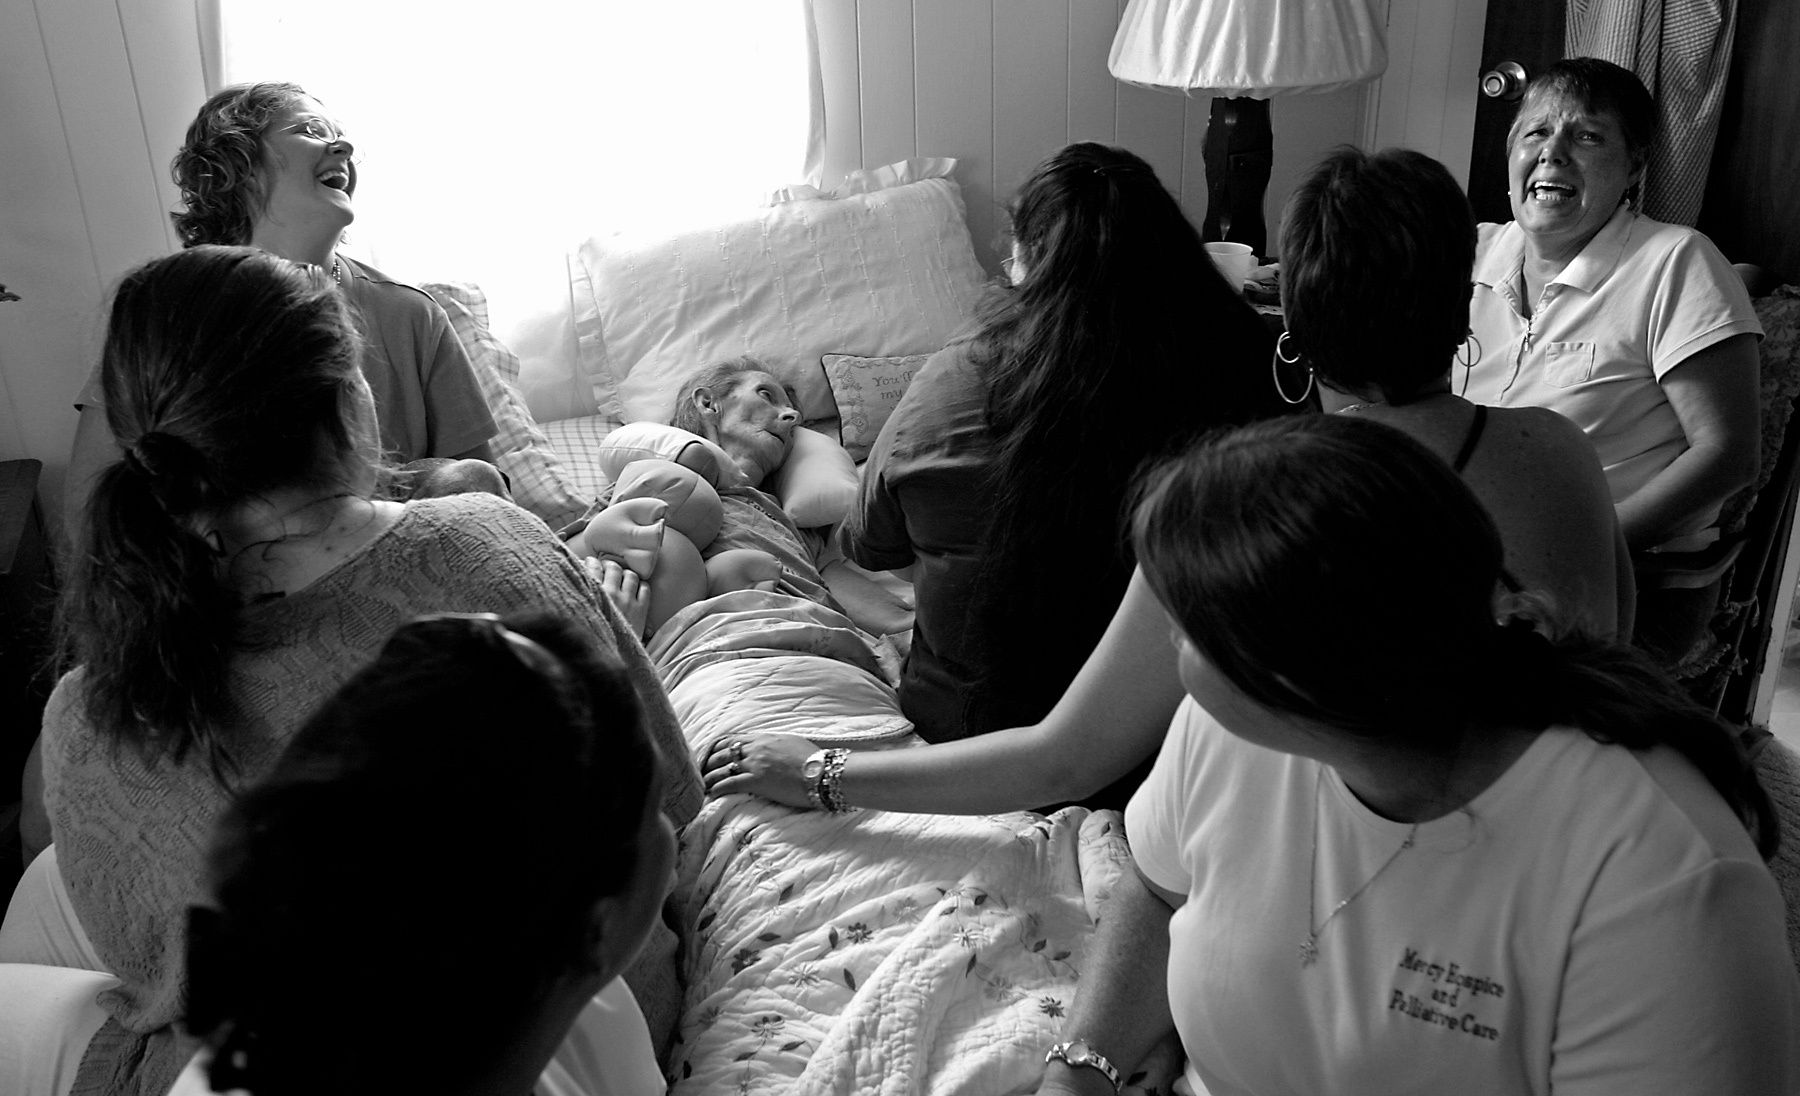 Family, friends and co-workers of Mercy Hospice, share humorous stories about Pat in a crowded bedroom on the afternoon before she died of Colon Cancer.{quote}She would of told us as we sit here,{quote} said friend J.J. Daniel. (far right) {quote}Grow-up and handle this with your big girl panties on.{quote}